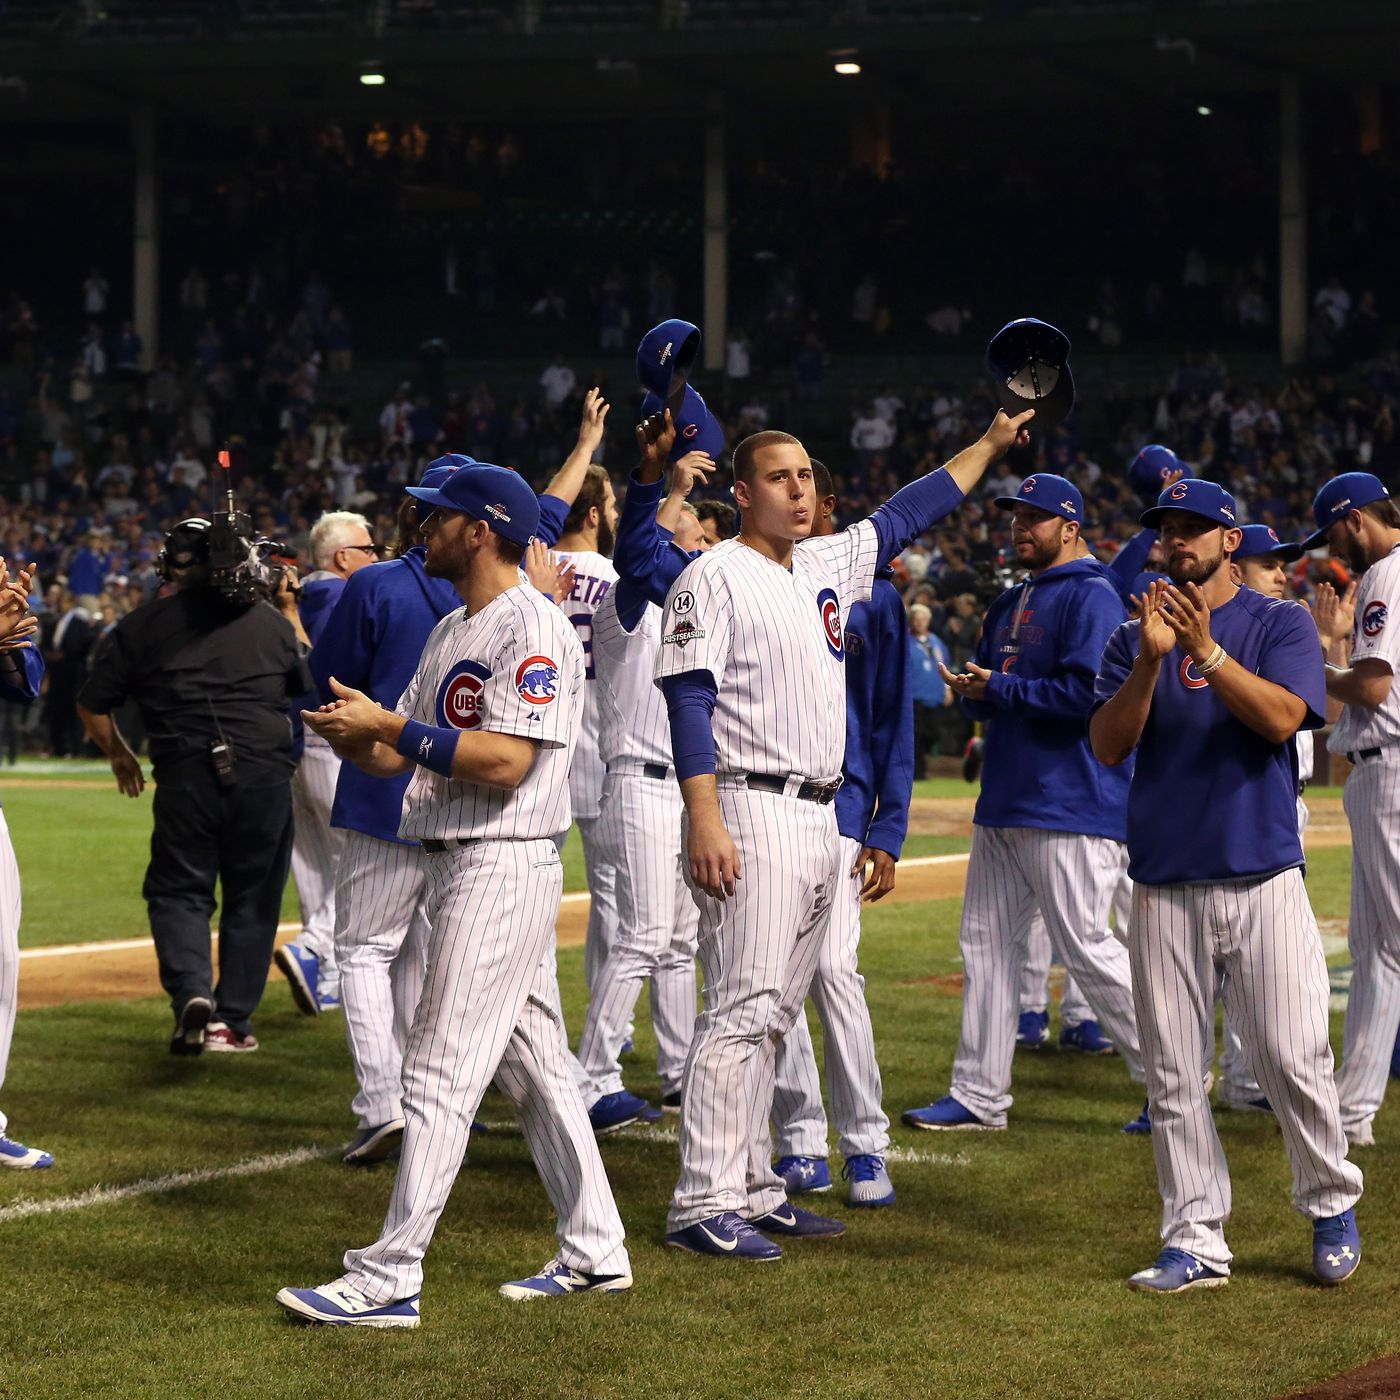 National League Championship Series Game 4, Mets 8, Cubs 3